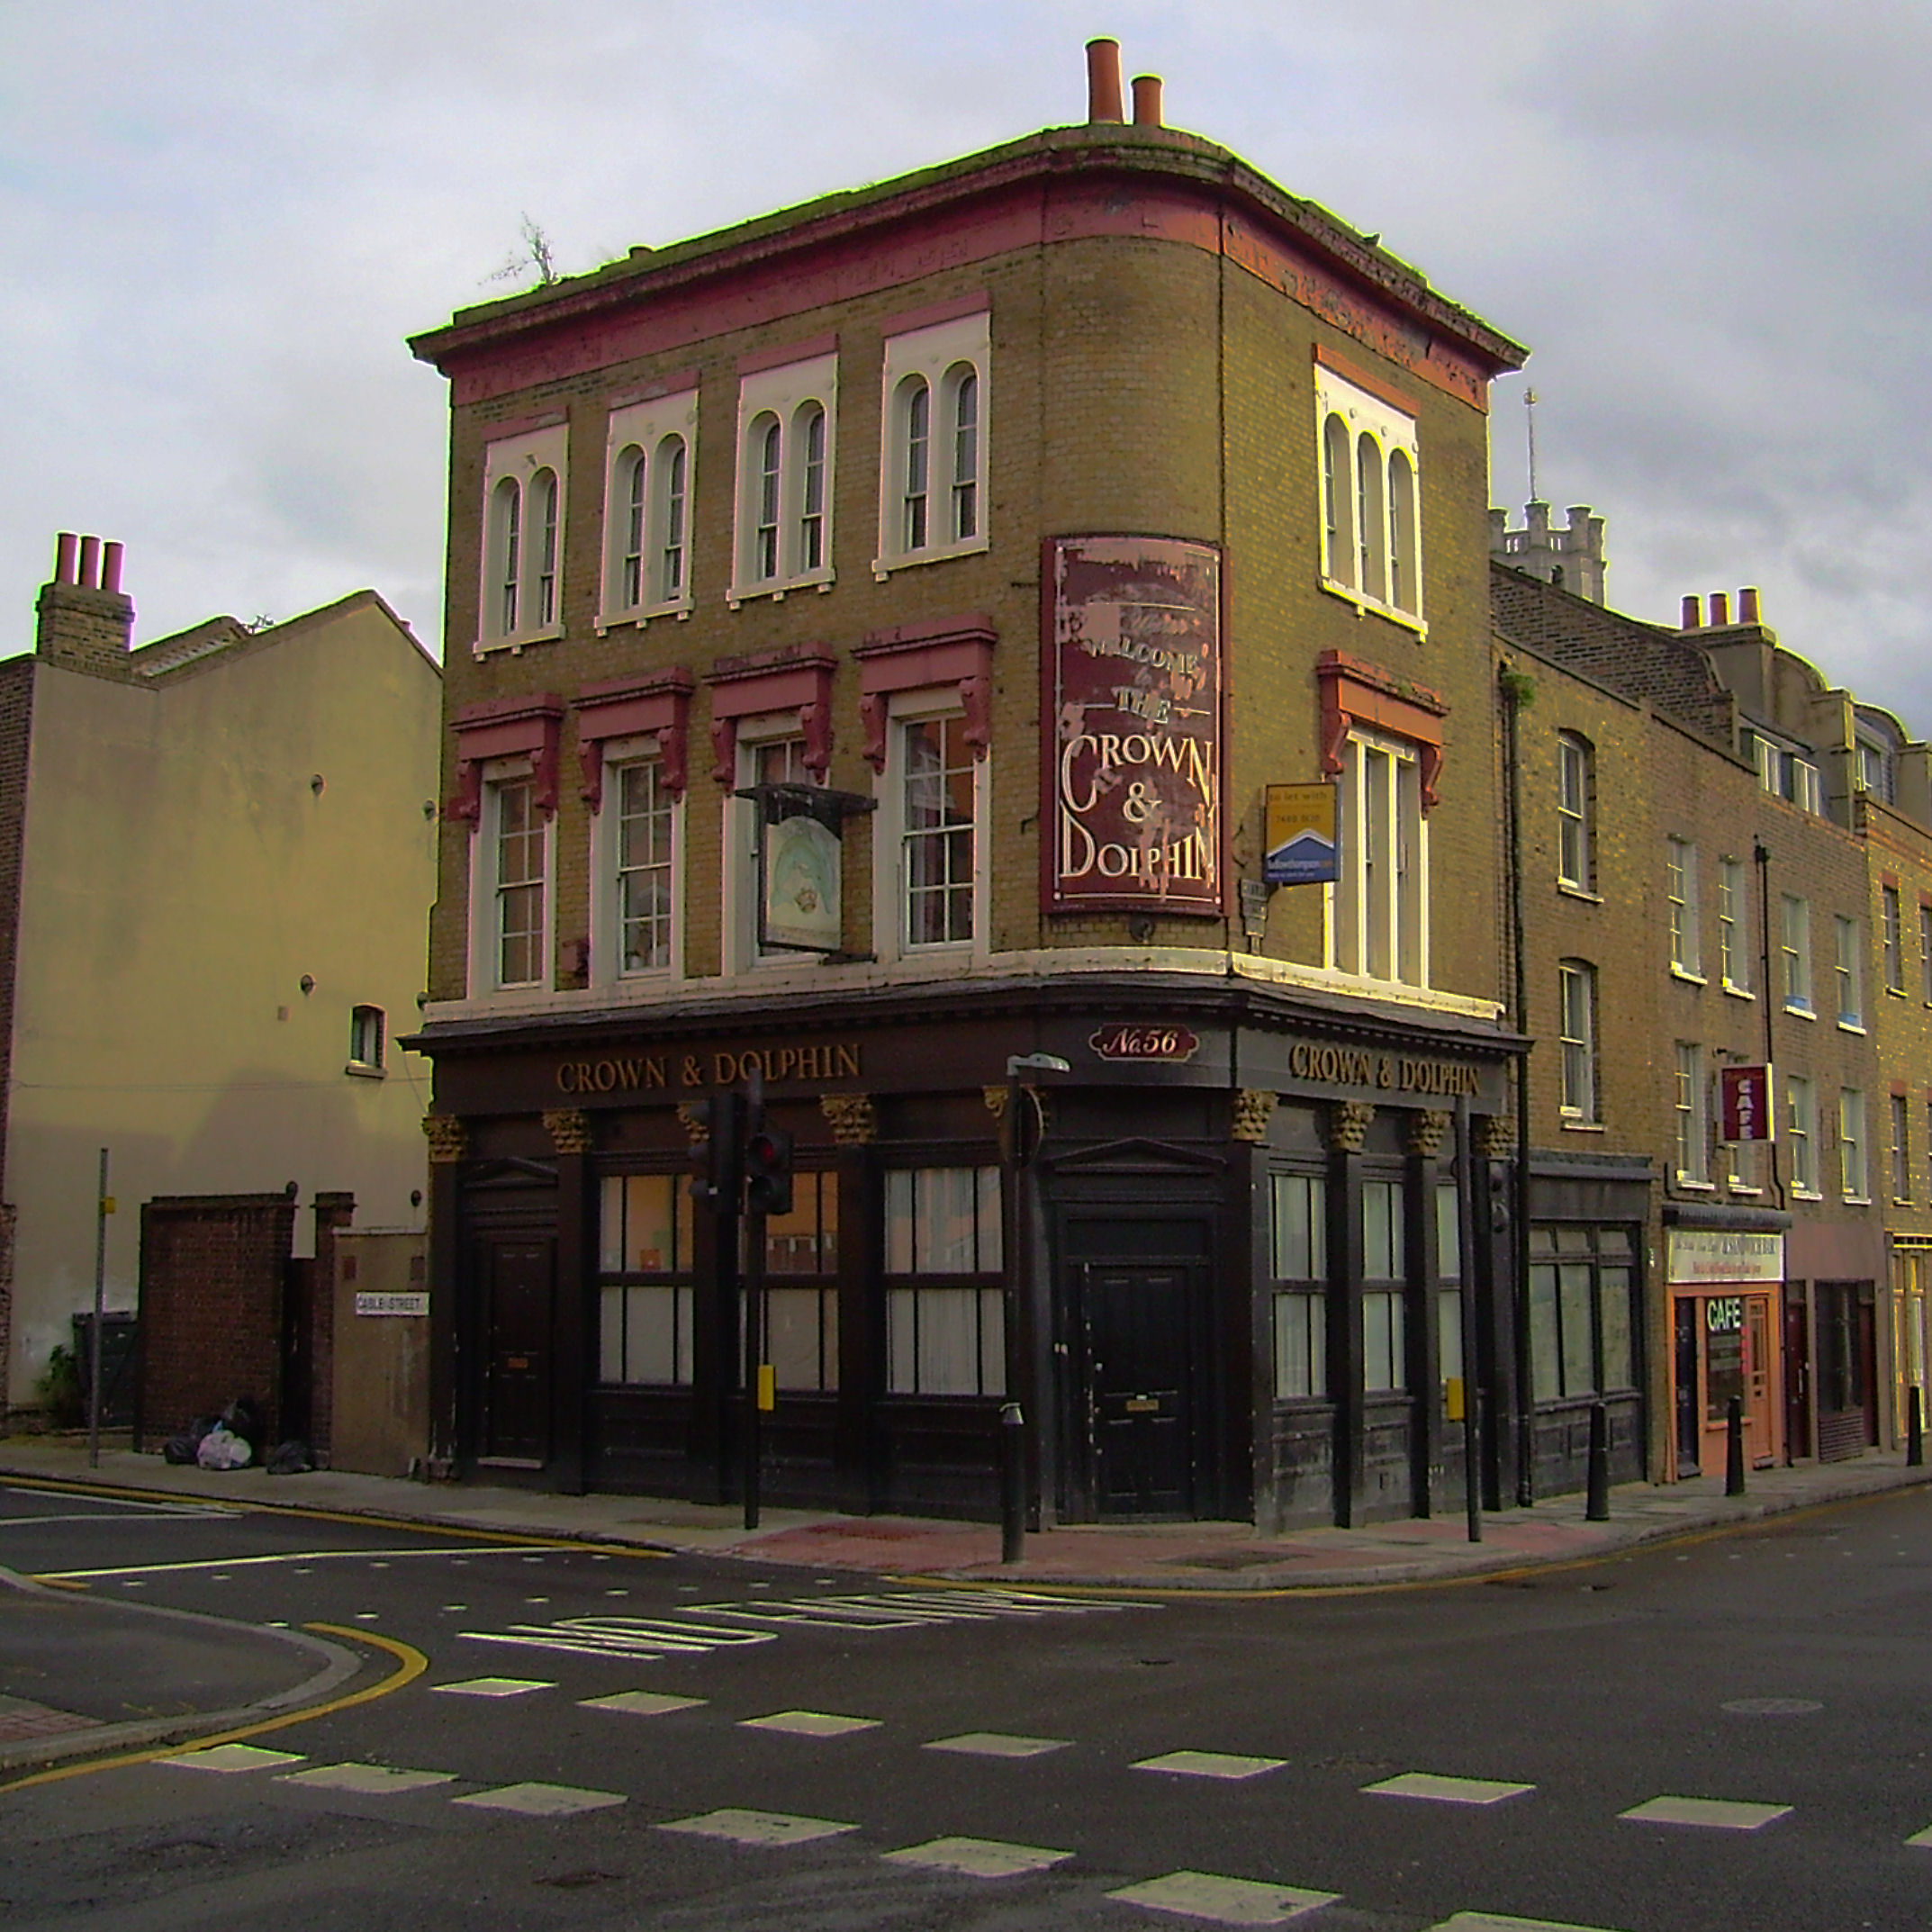 Crown and Dolphin pub